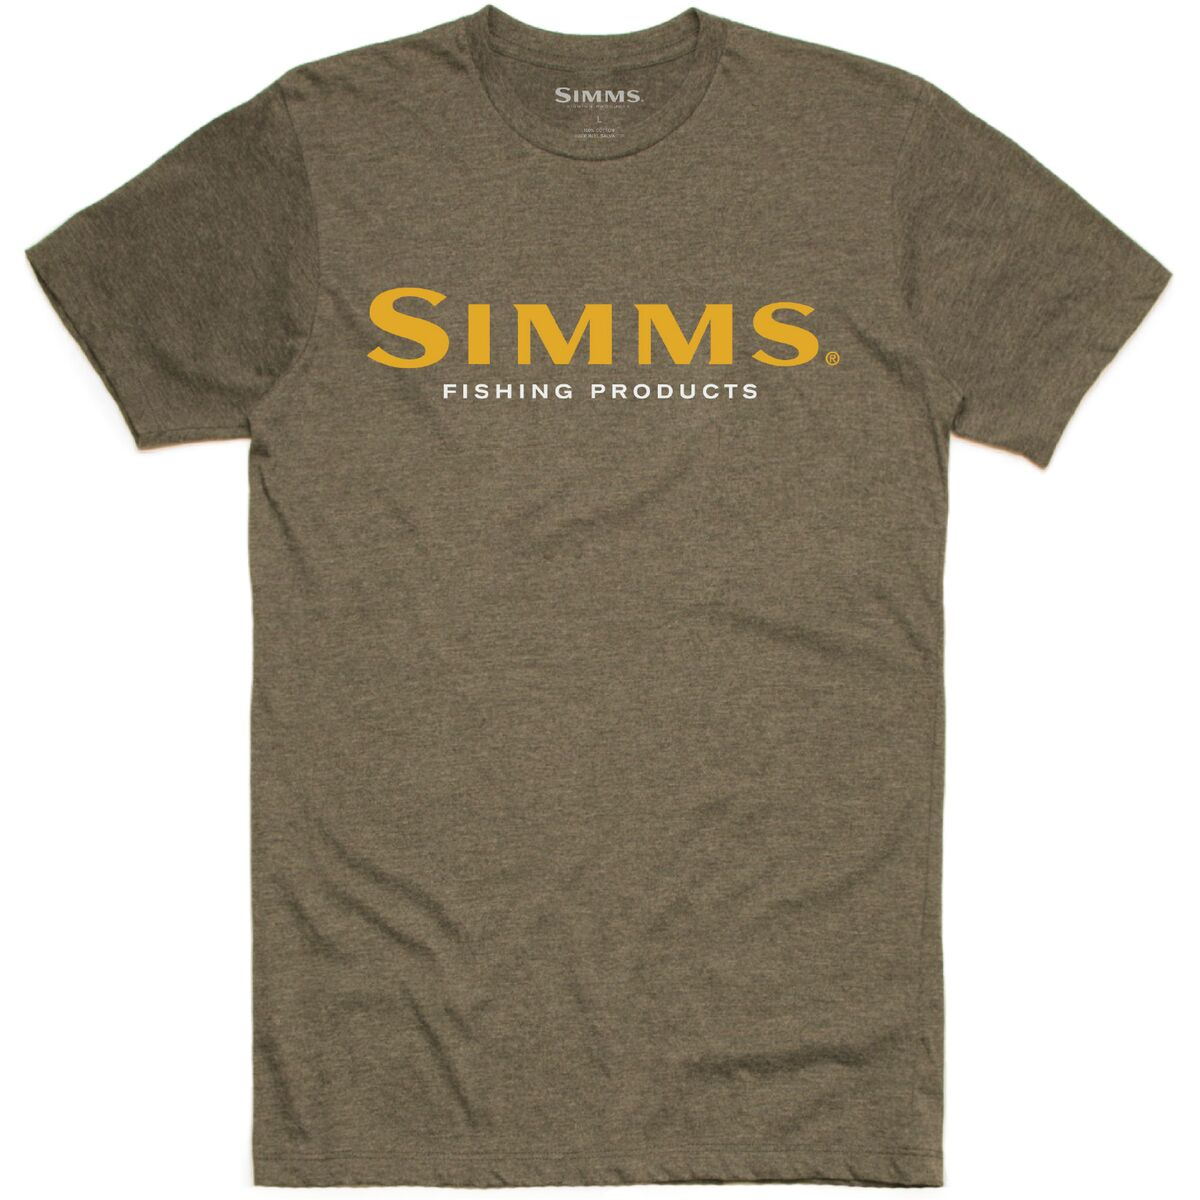 SIMMS LOGO OLIVE